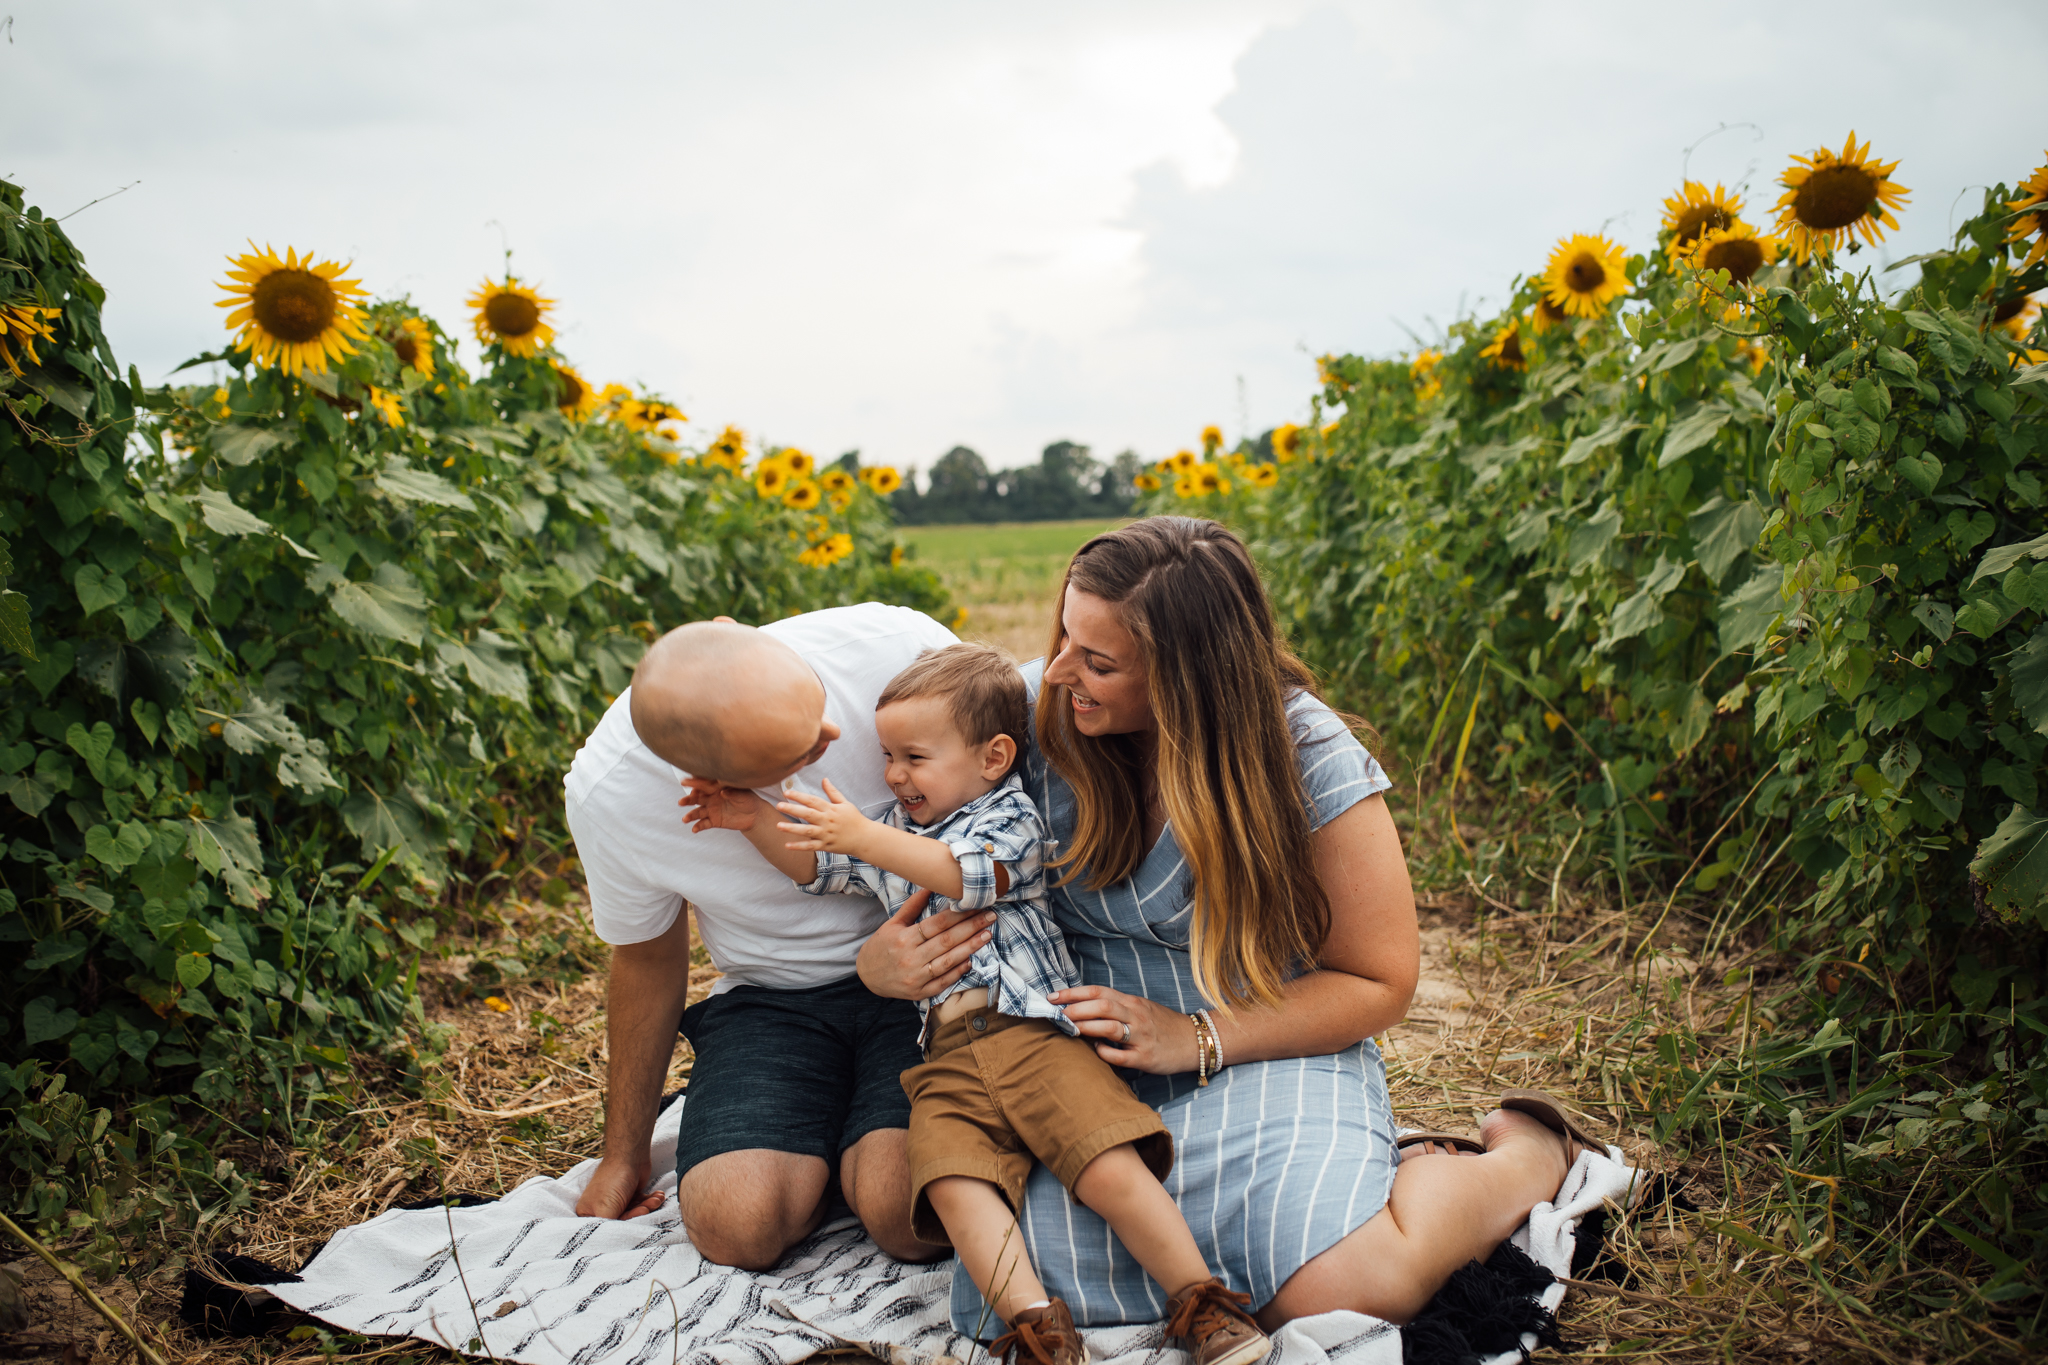 memphis-family-photographer-sunflower-thewarmtharoundyou (8 of 11).jpg